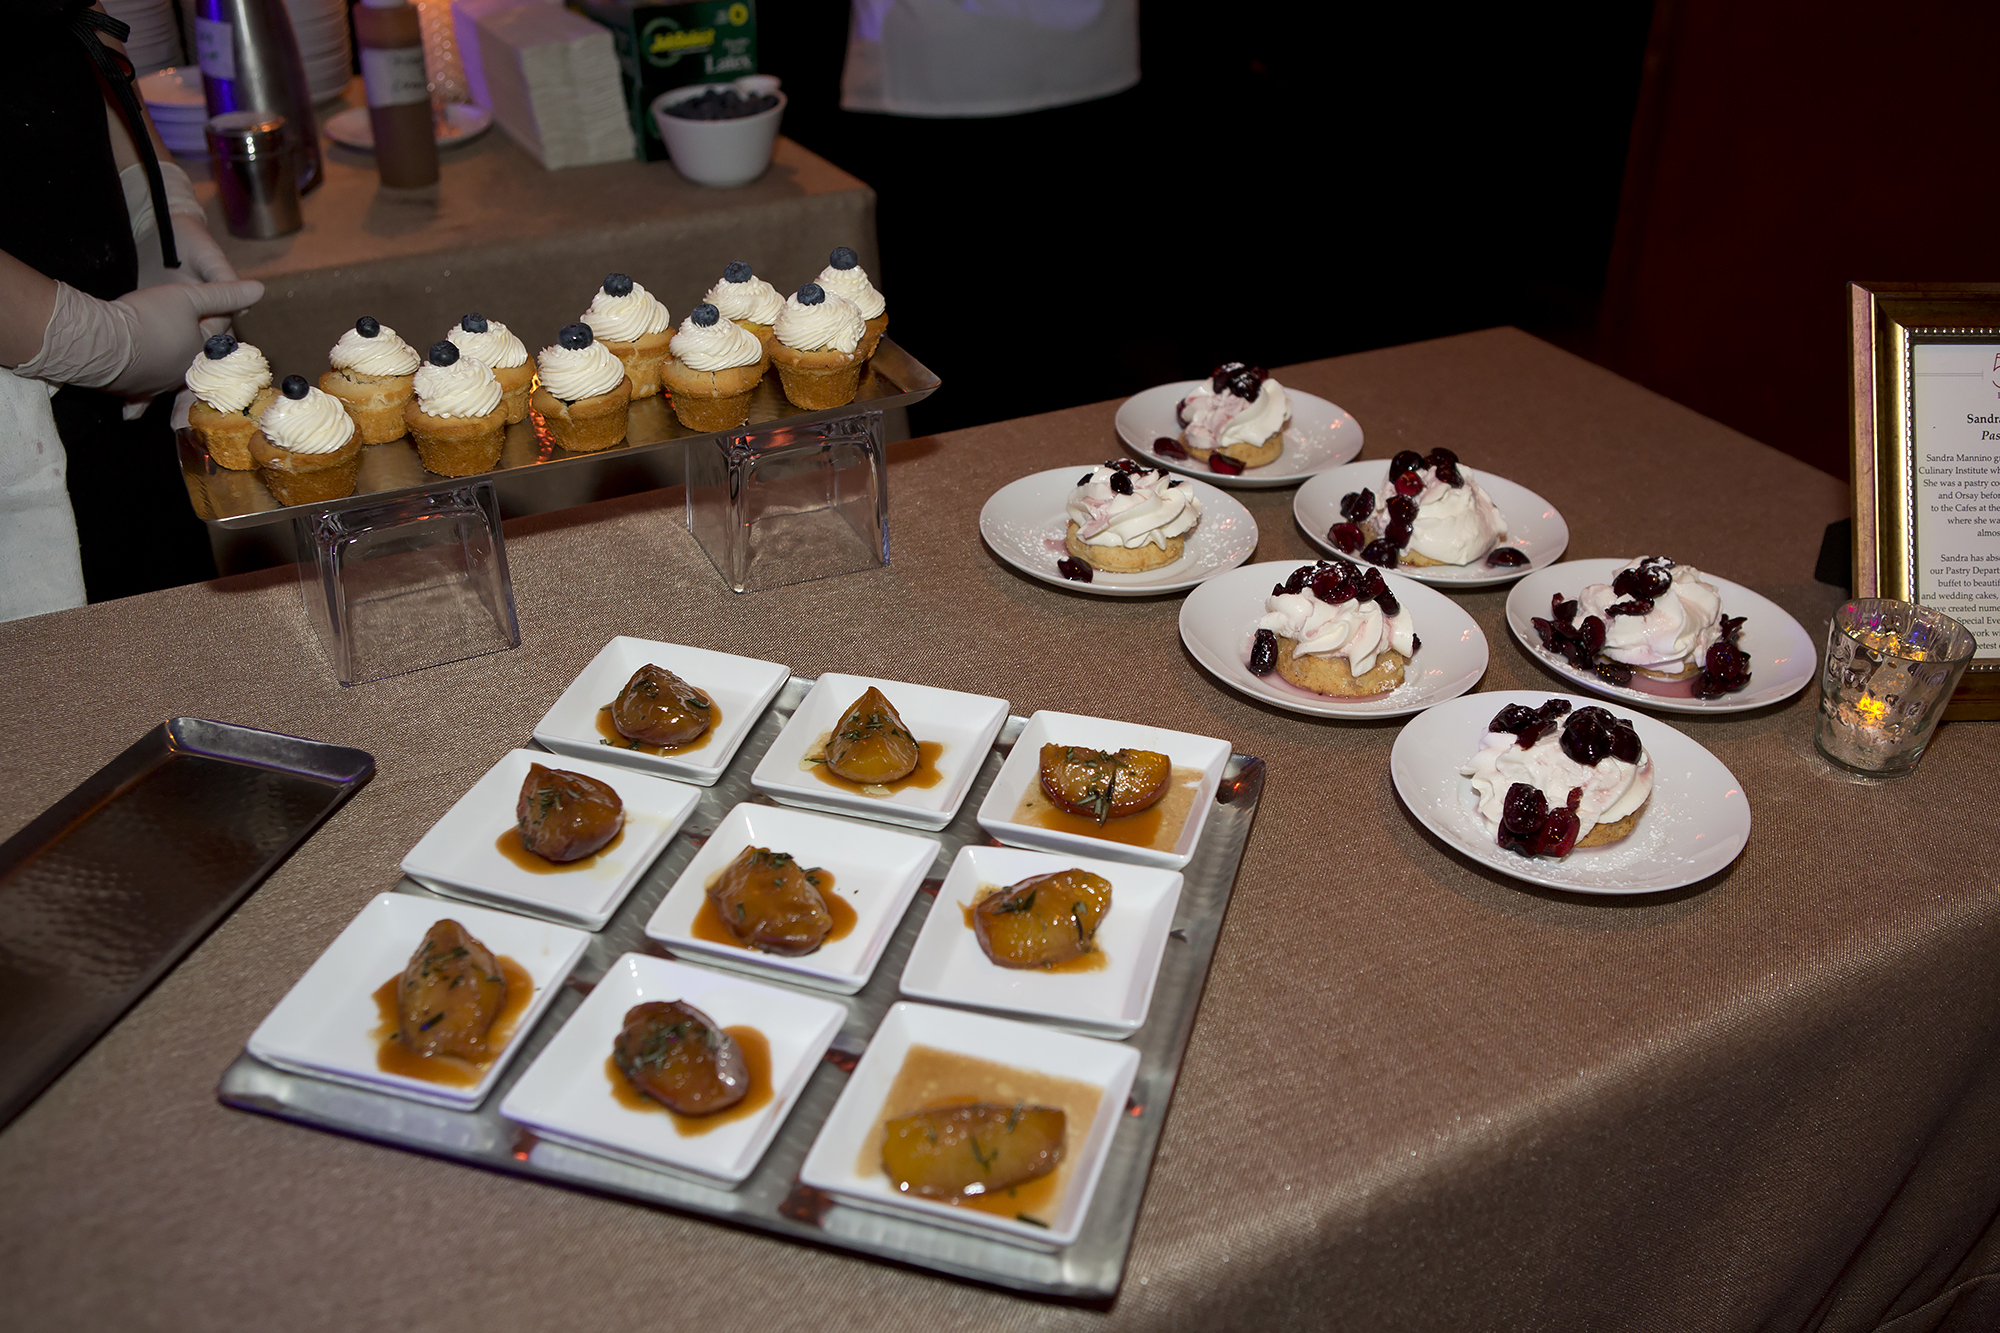 Various pastries and cupcakes